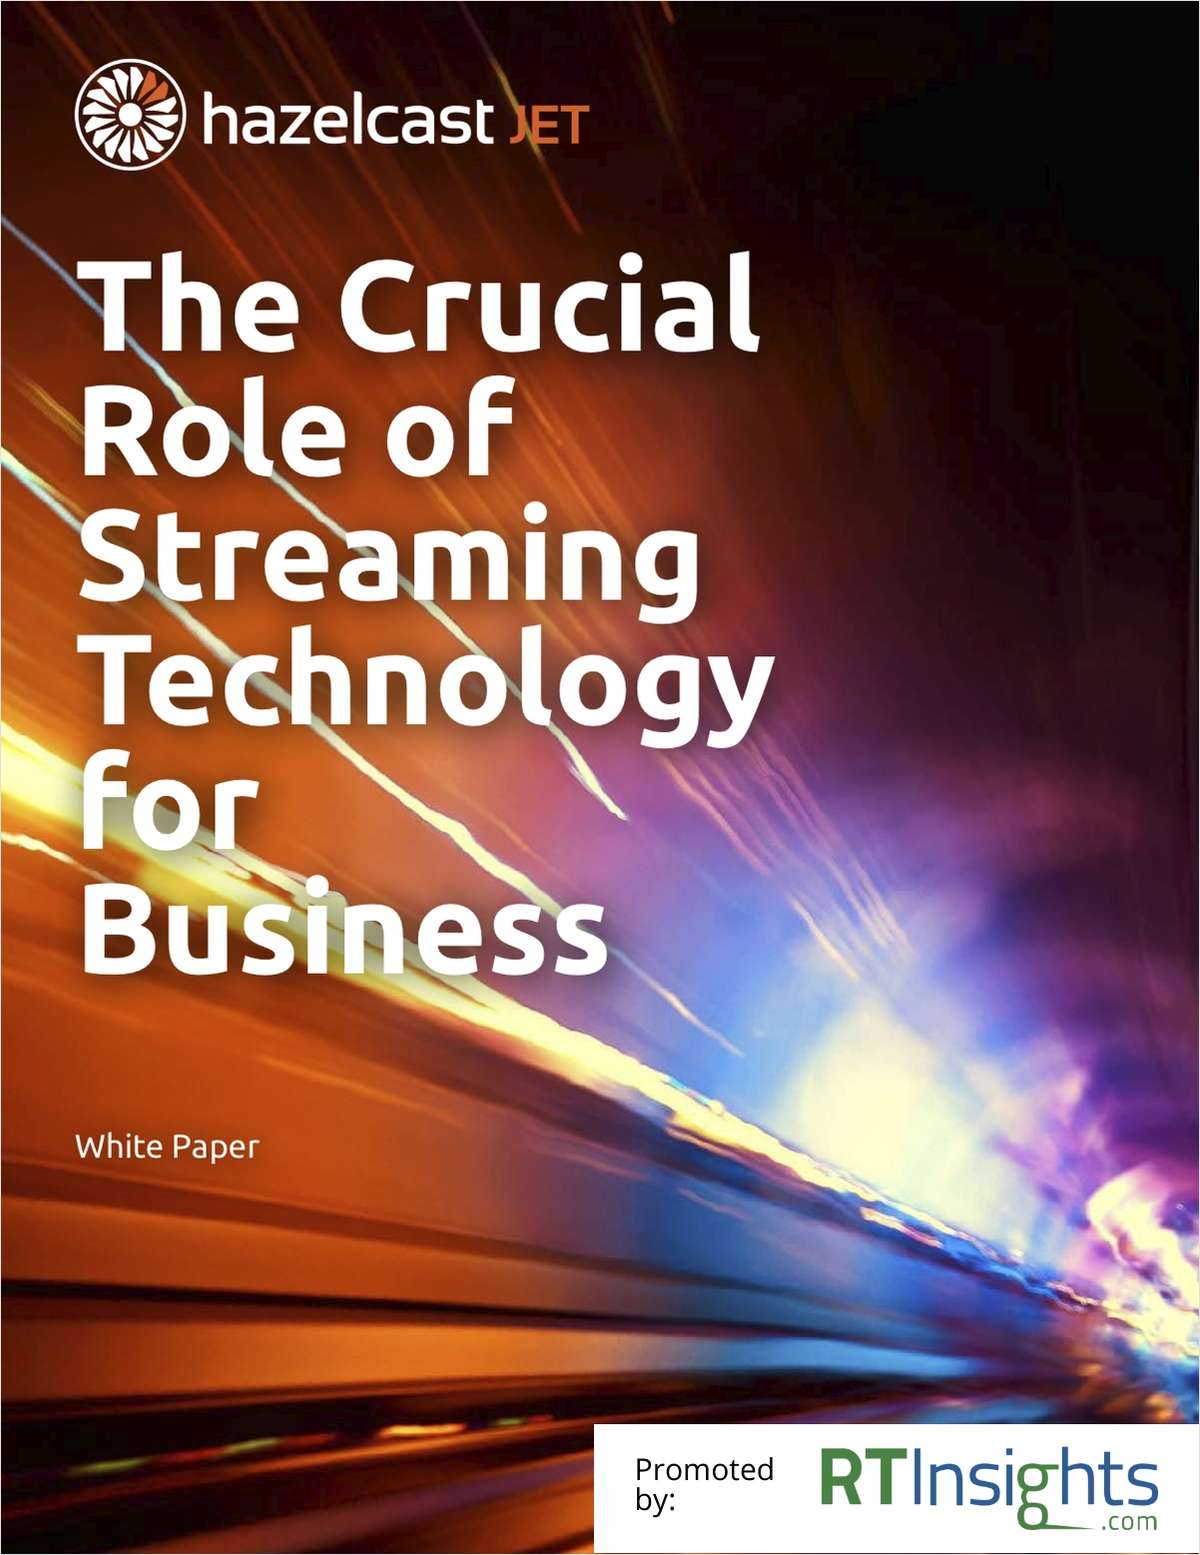 The Crucial Role of Streaming Technology for Business